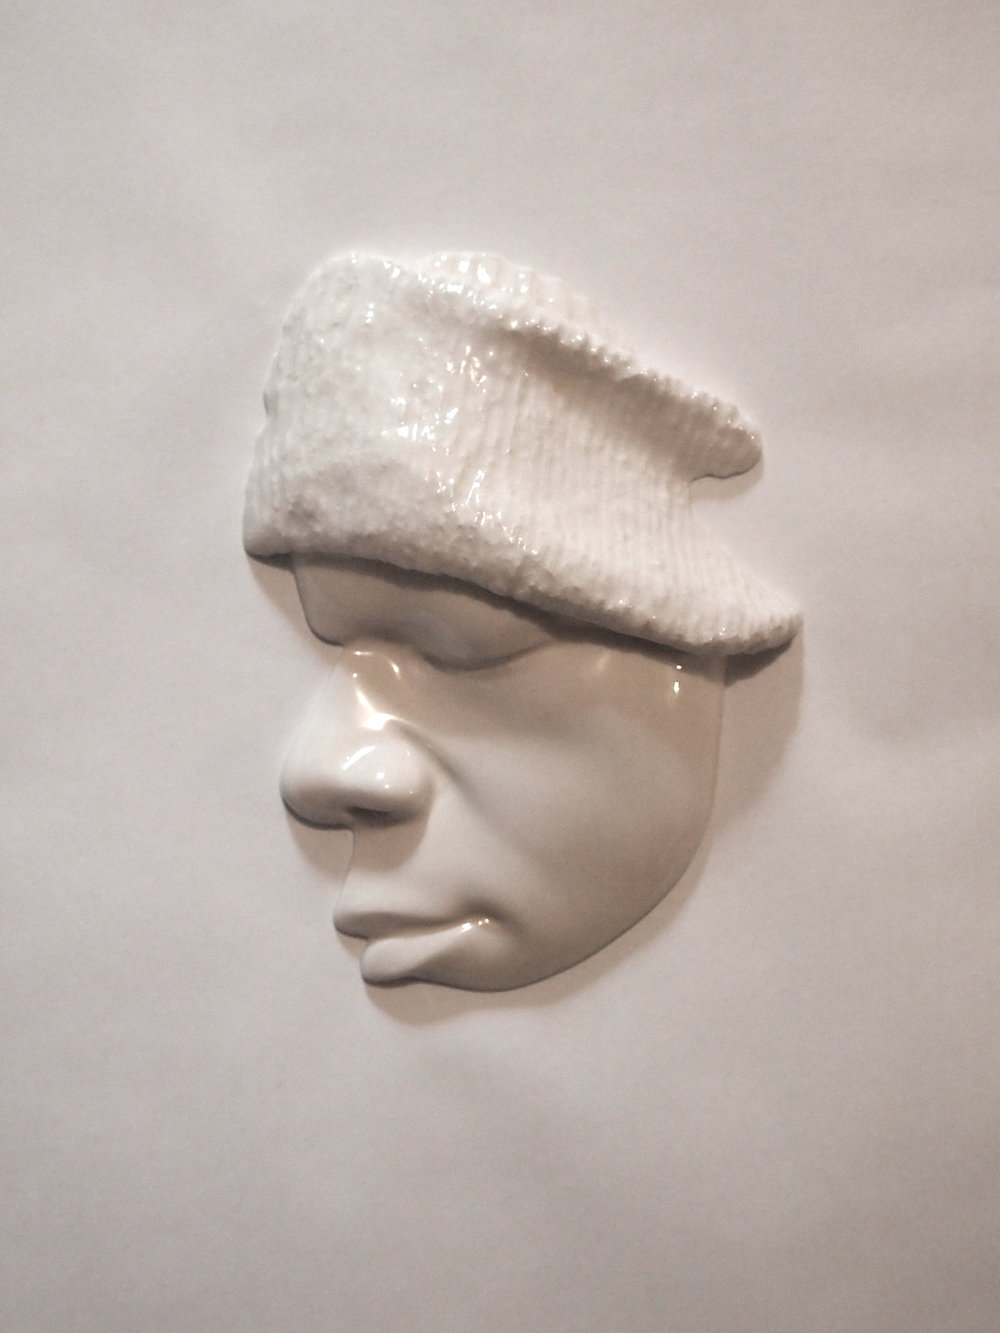 Craig Paul Nowak art face sculpture hat